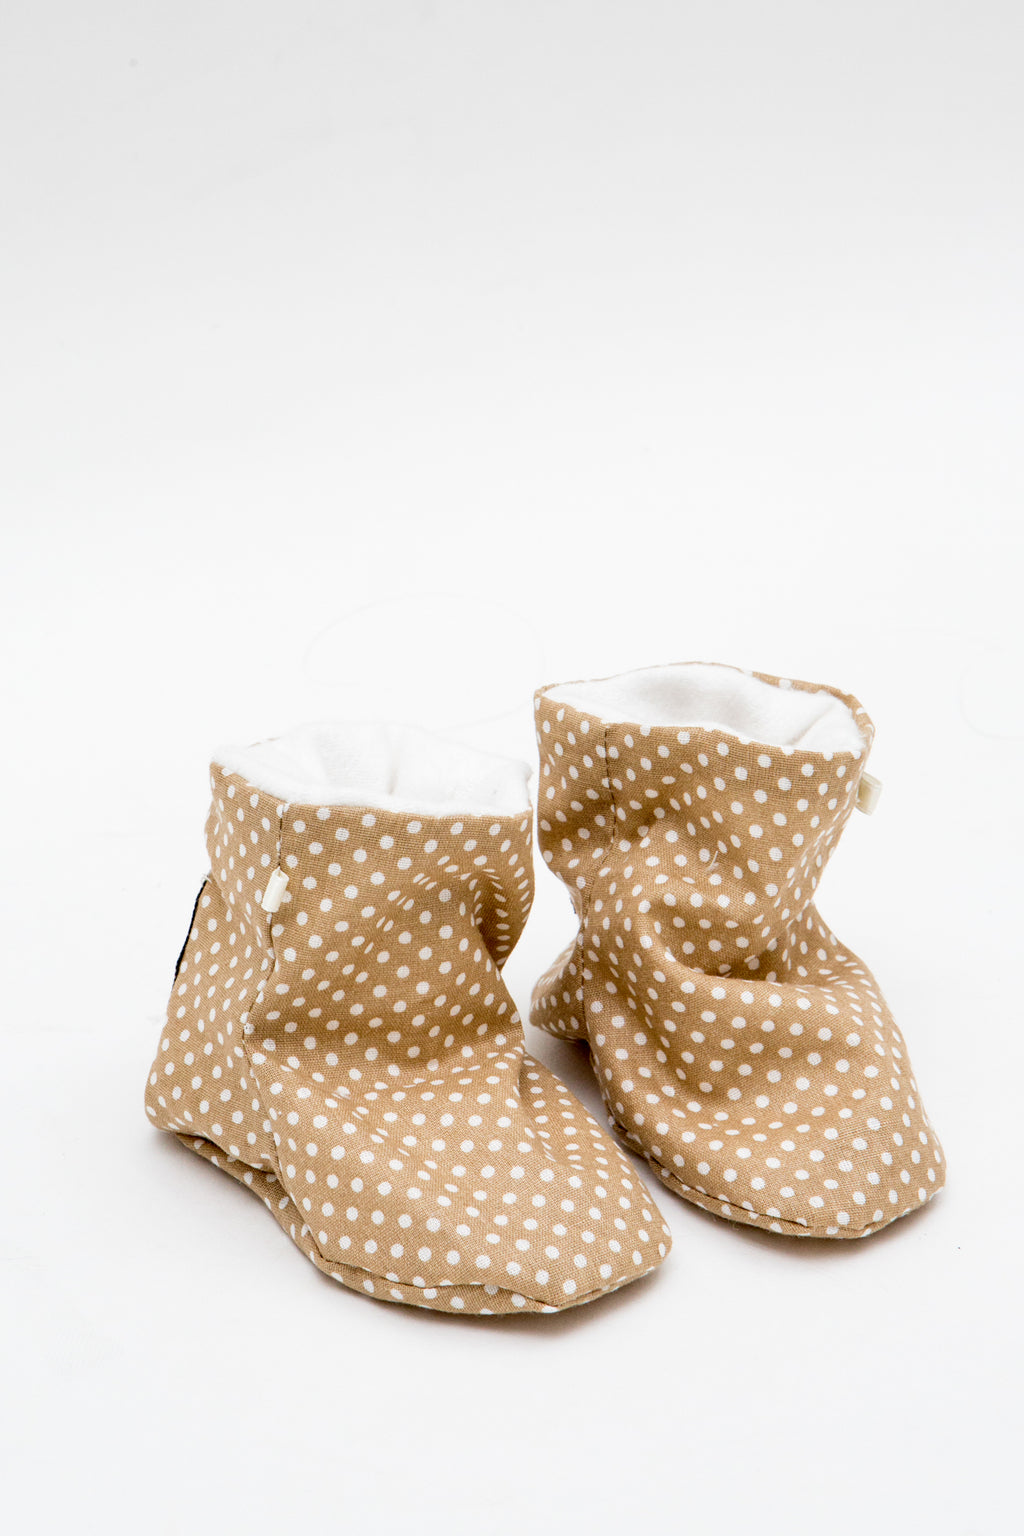 BABY SHOES * SANDY POLKA